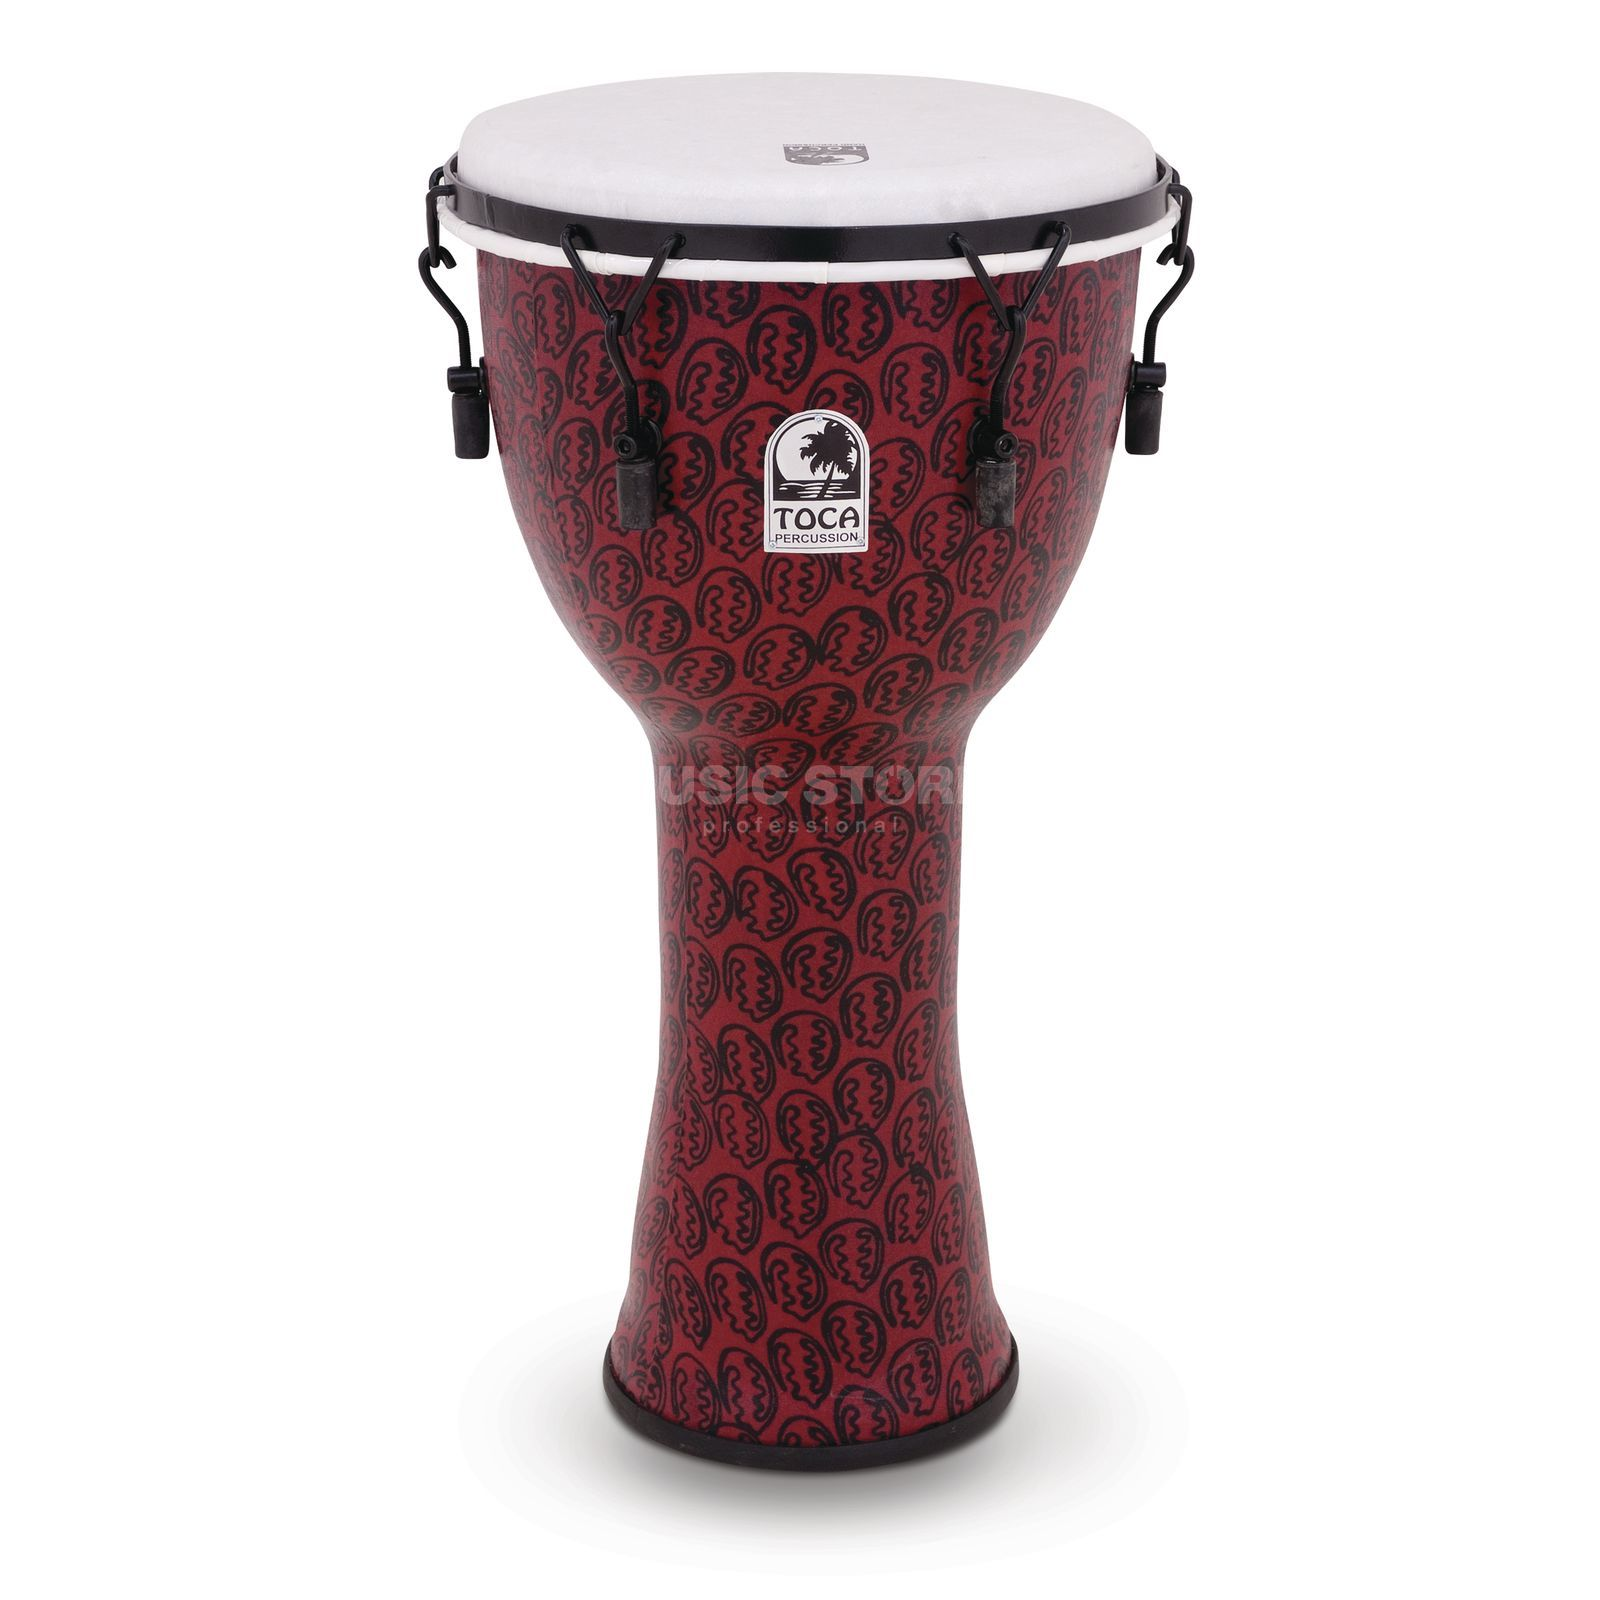 "Toca Percussion Freestyle Djembe TF2DM-10RM, 10"", Red Mask Produktbillede"